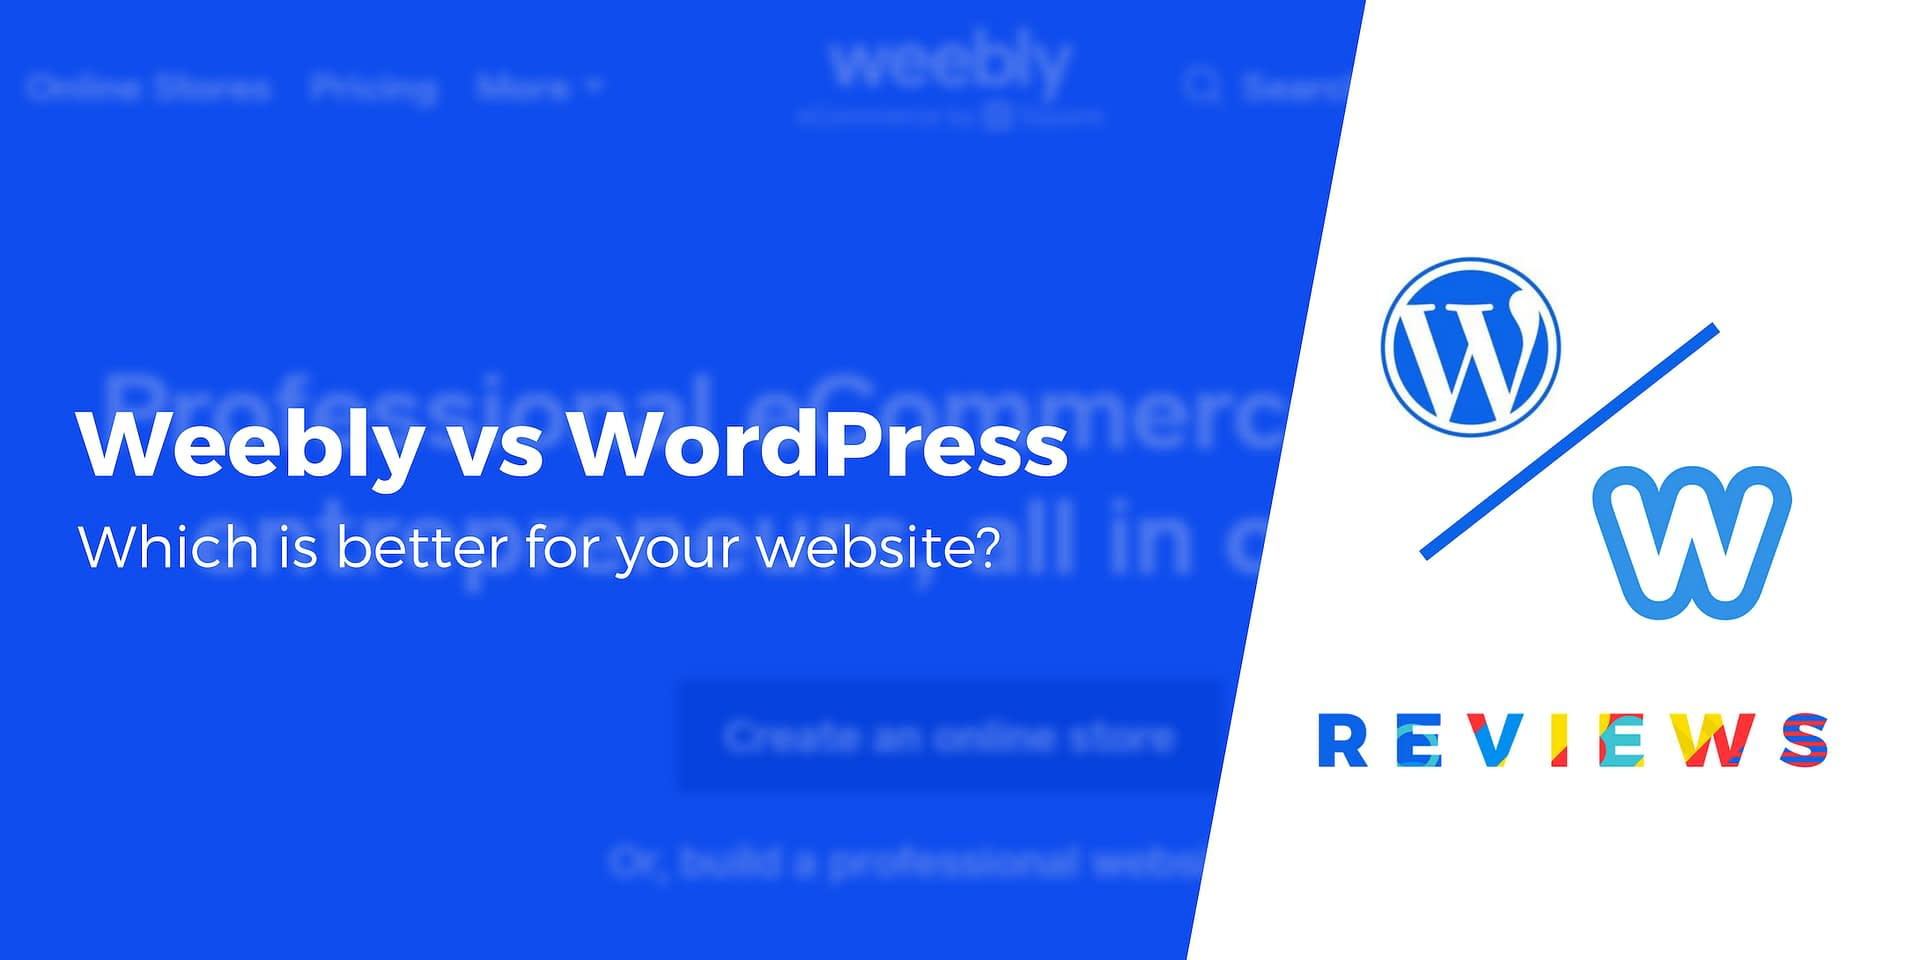 Weebly vs WordPress: Important Differences, Plus Which One